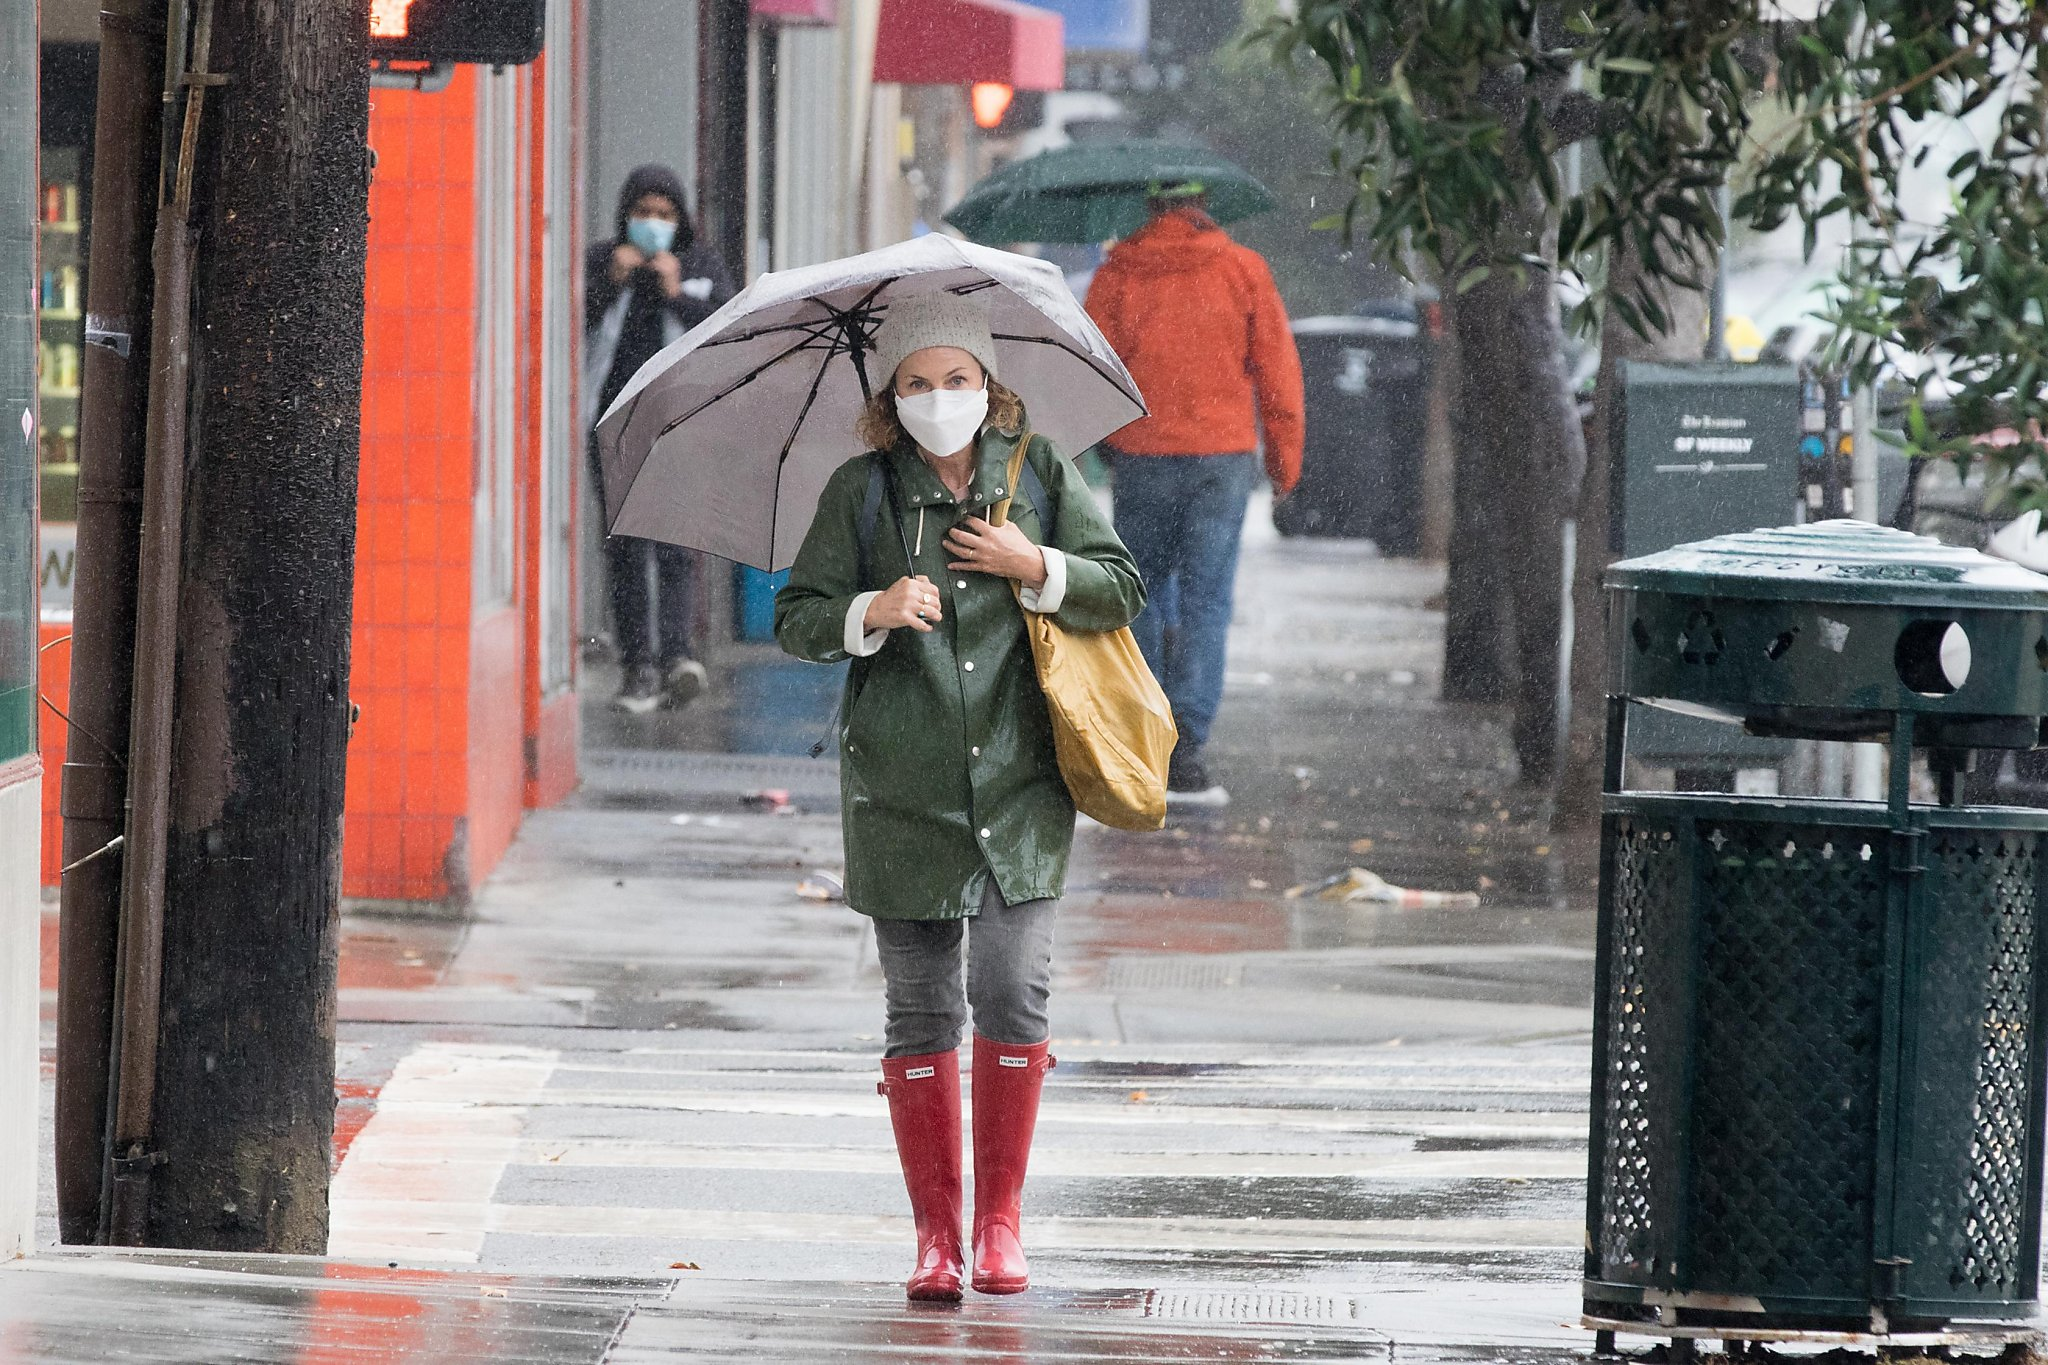 What you need to know about the atmospheric river poised to slam Bay Area